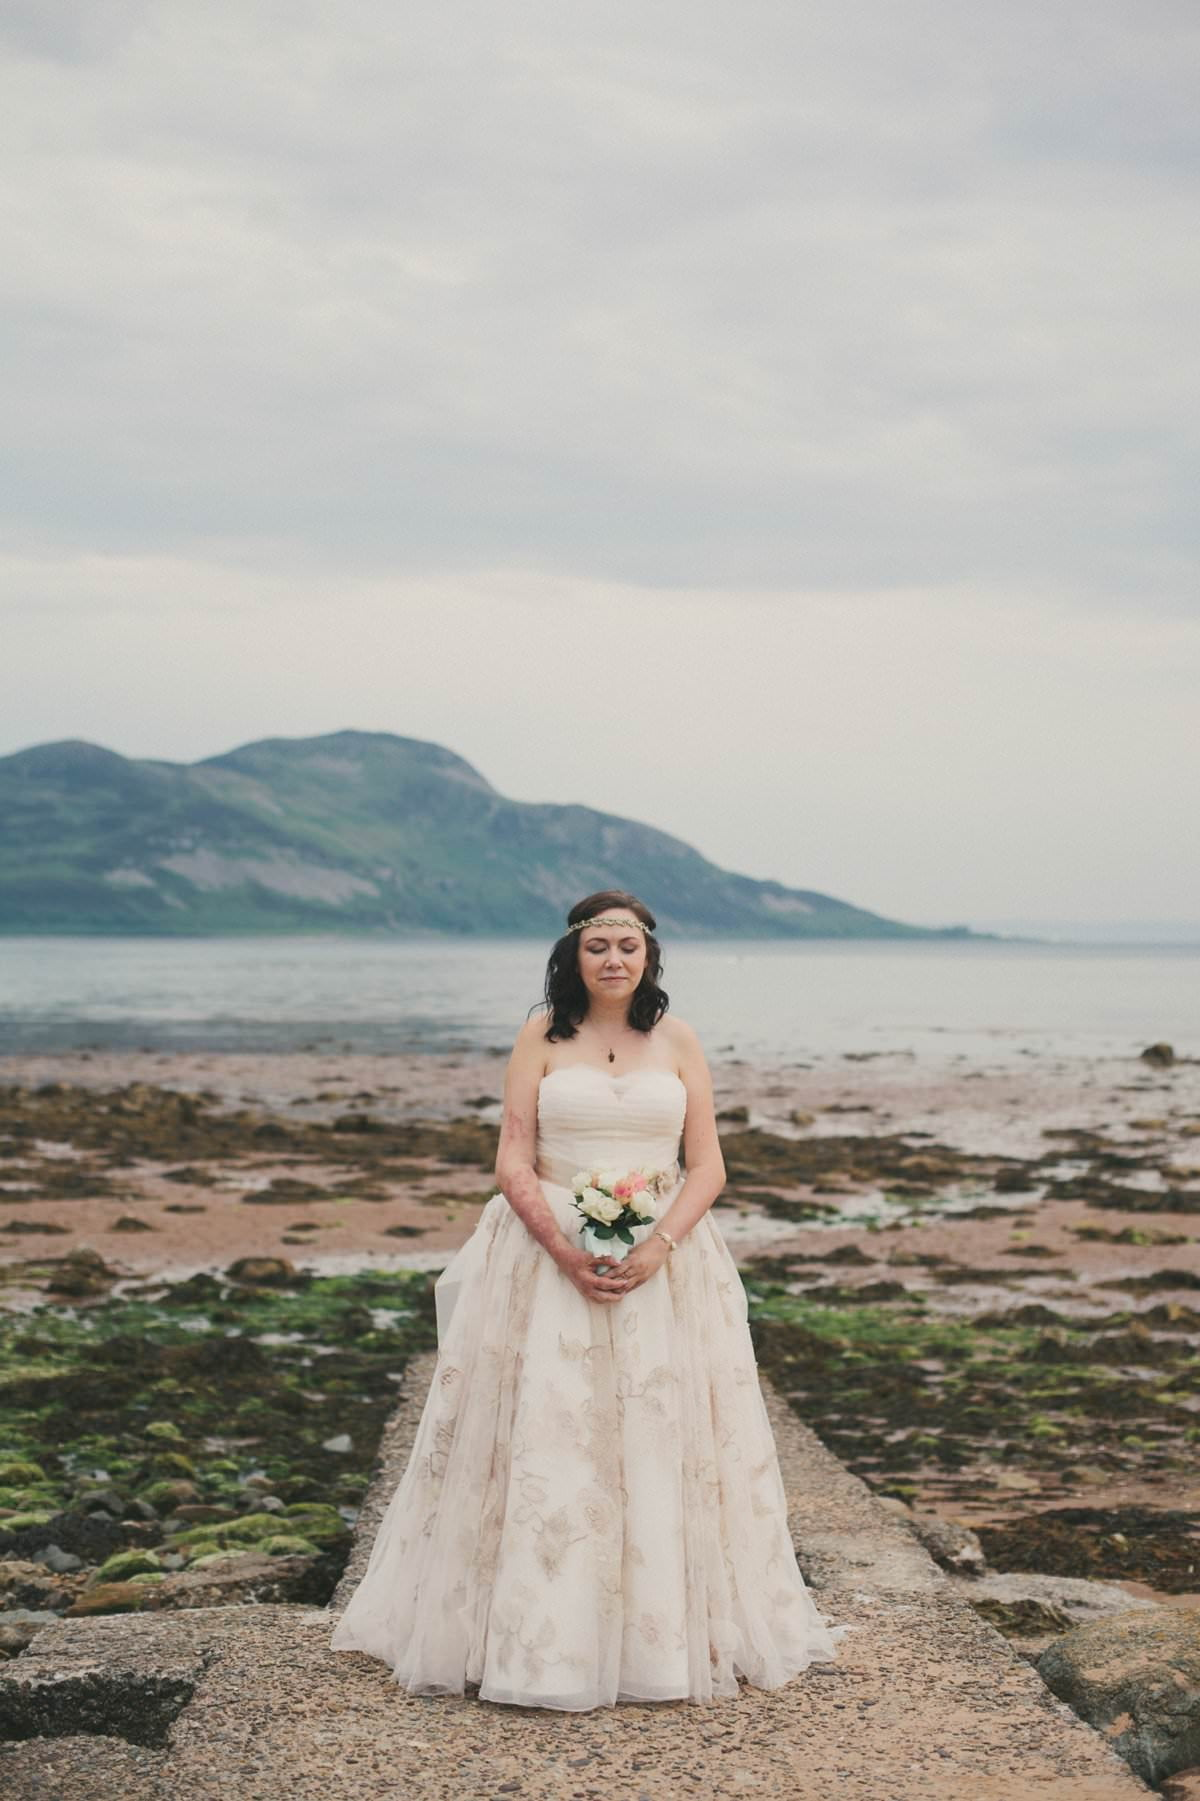 Bride holds bouquet by sea at wedding elopement outside Glenisle Hotel on The Isle of Arran Scotland